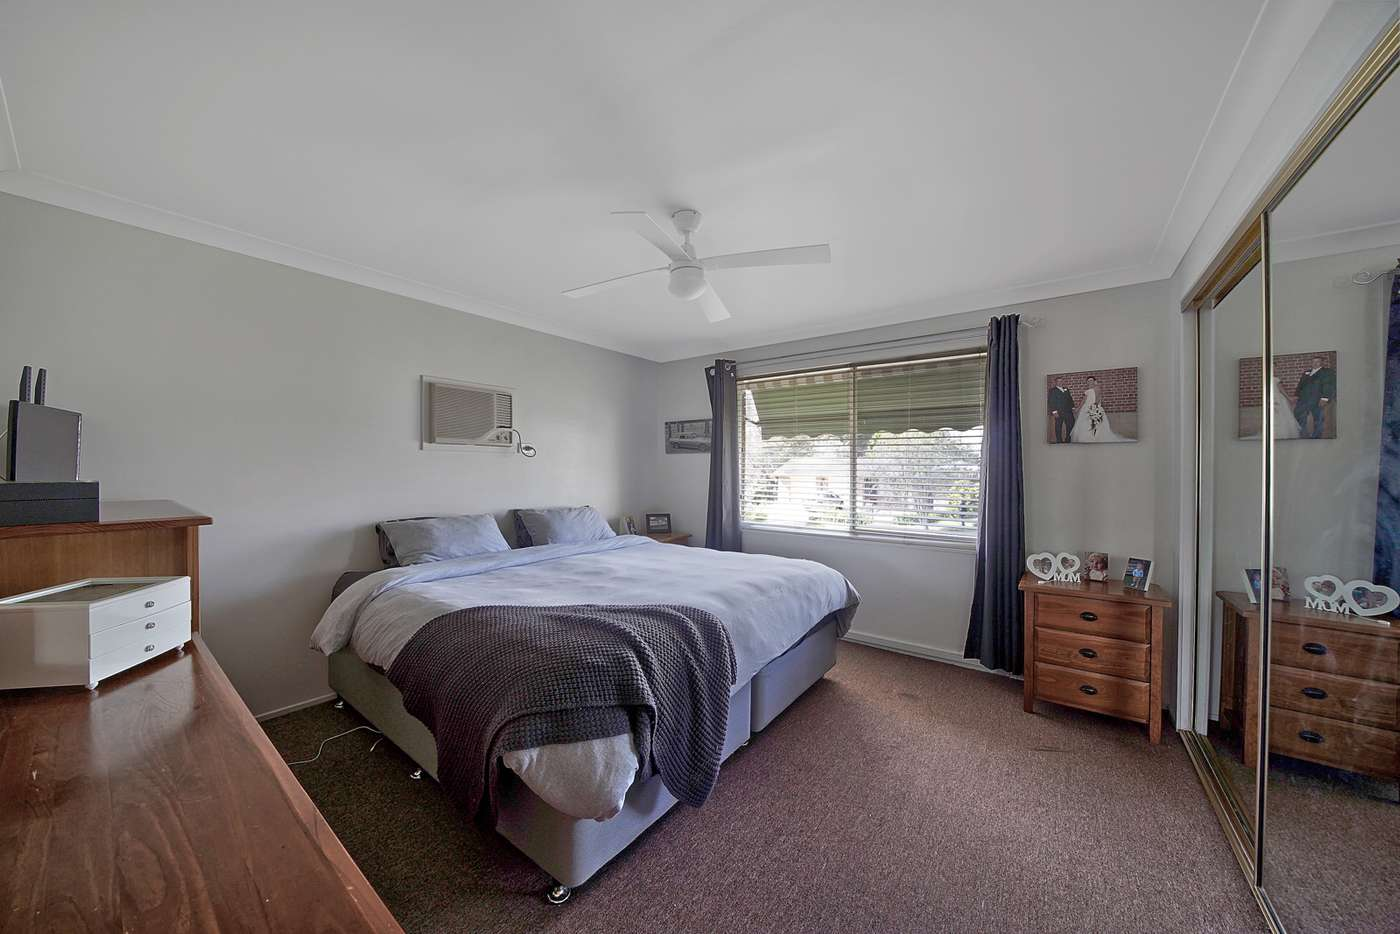 Sixth view of Homely house listing, 12 Leiha Place, Tahmoor NSW 2573